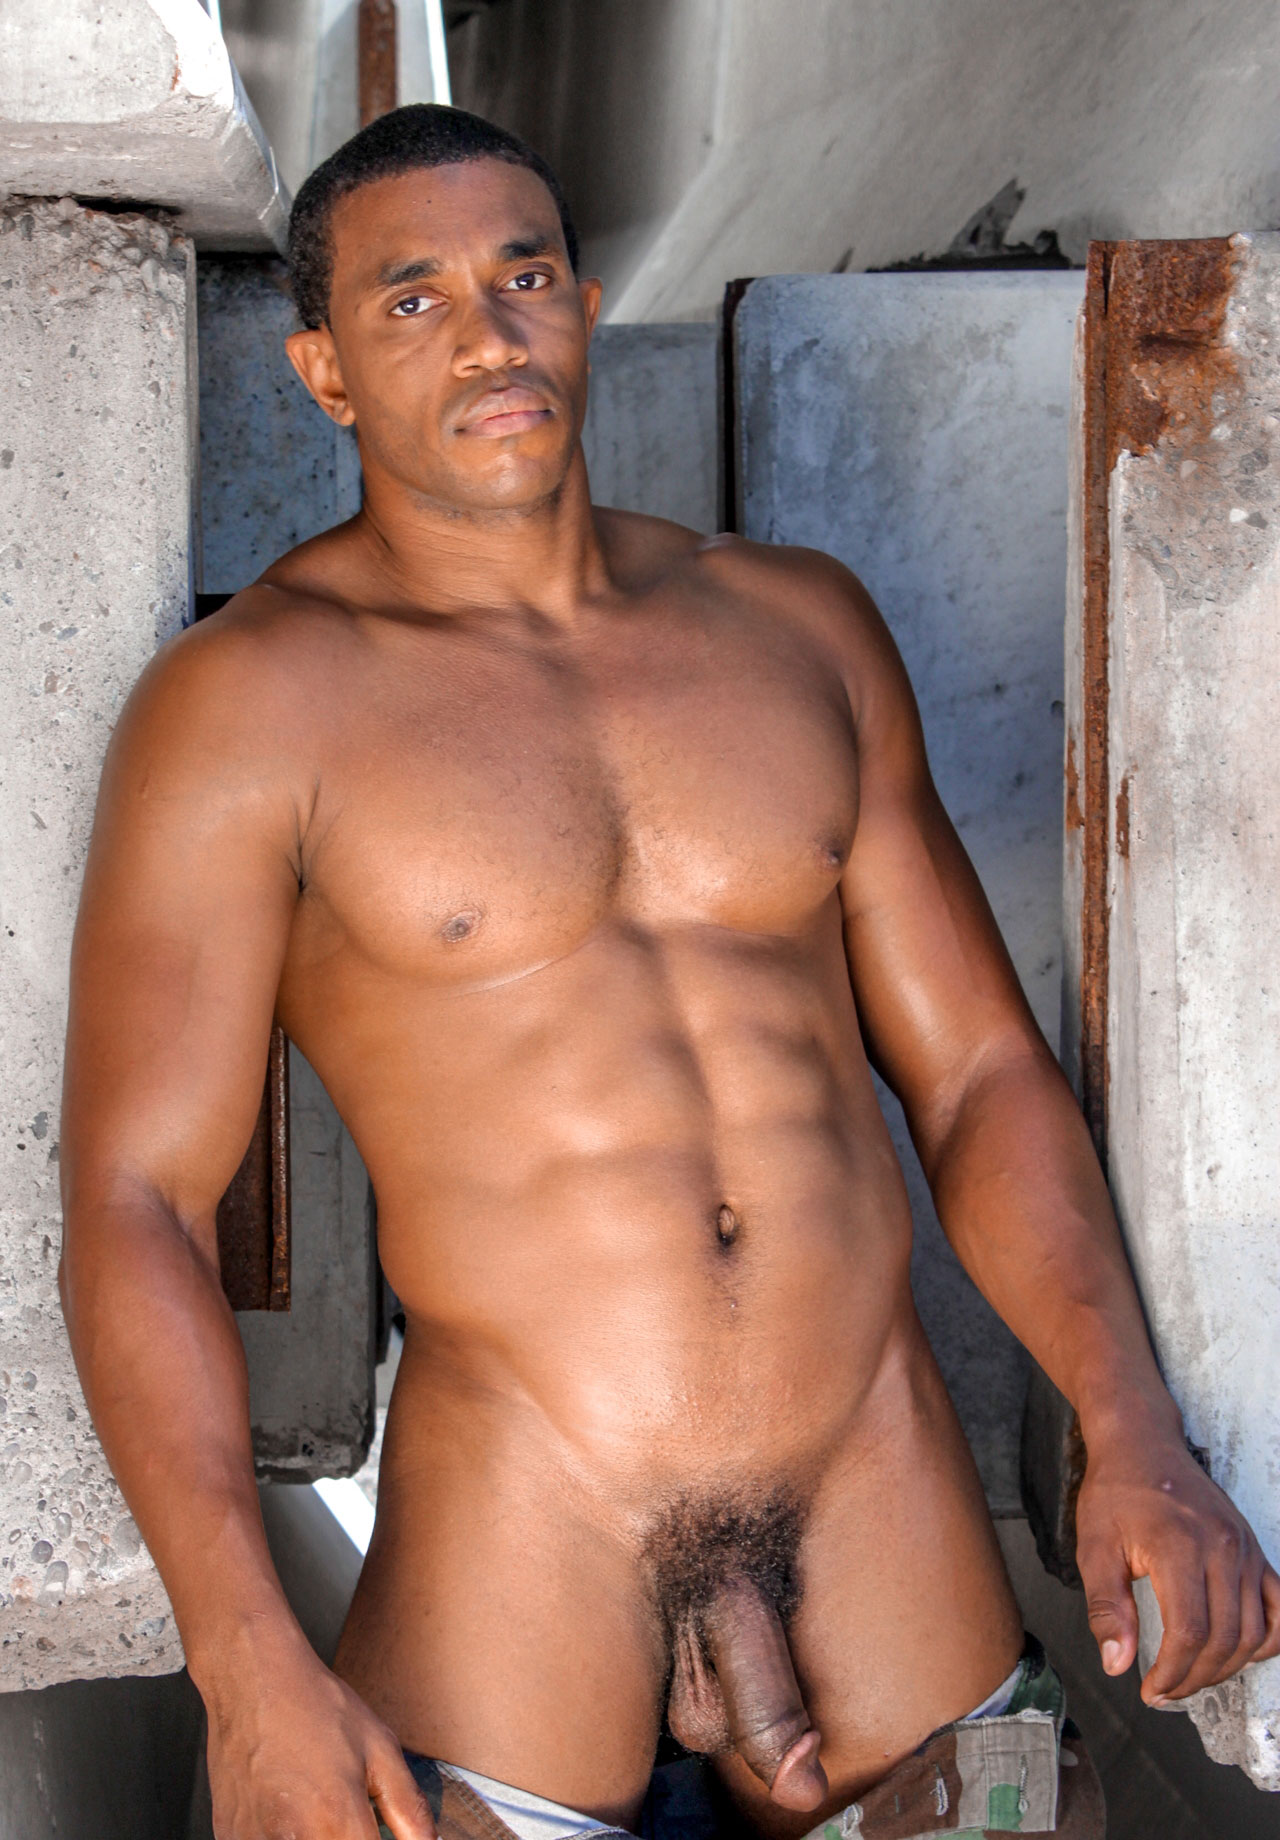 escort masculinos gay follando en la fiesta